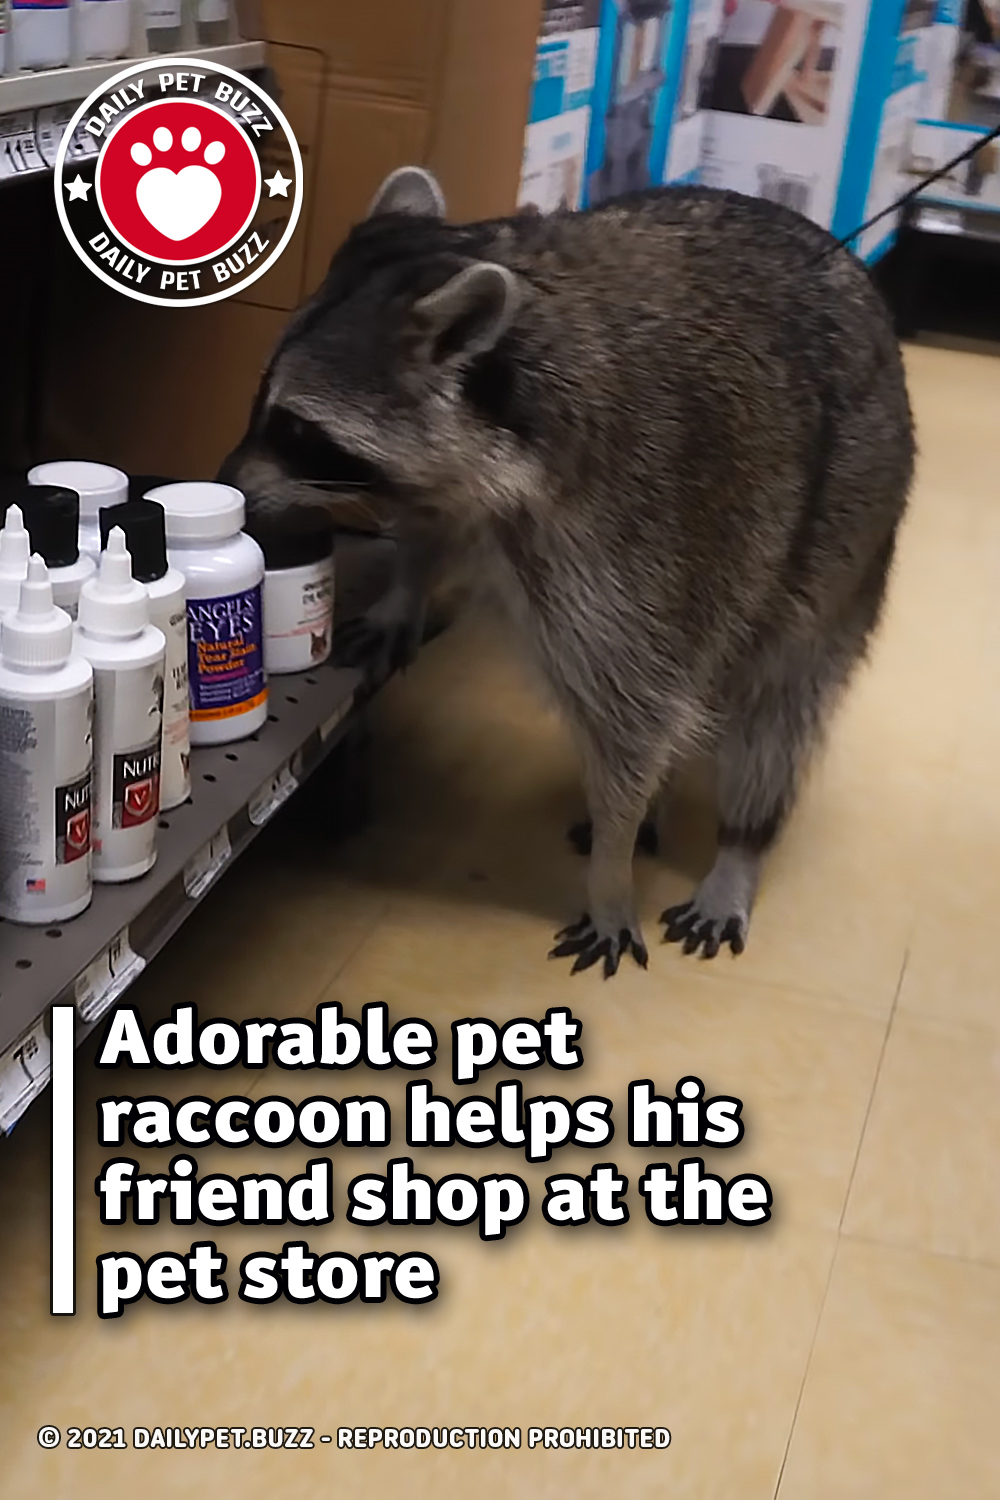 Adorable pet raccoon helps his friend shop at the pet store